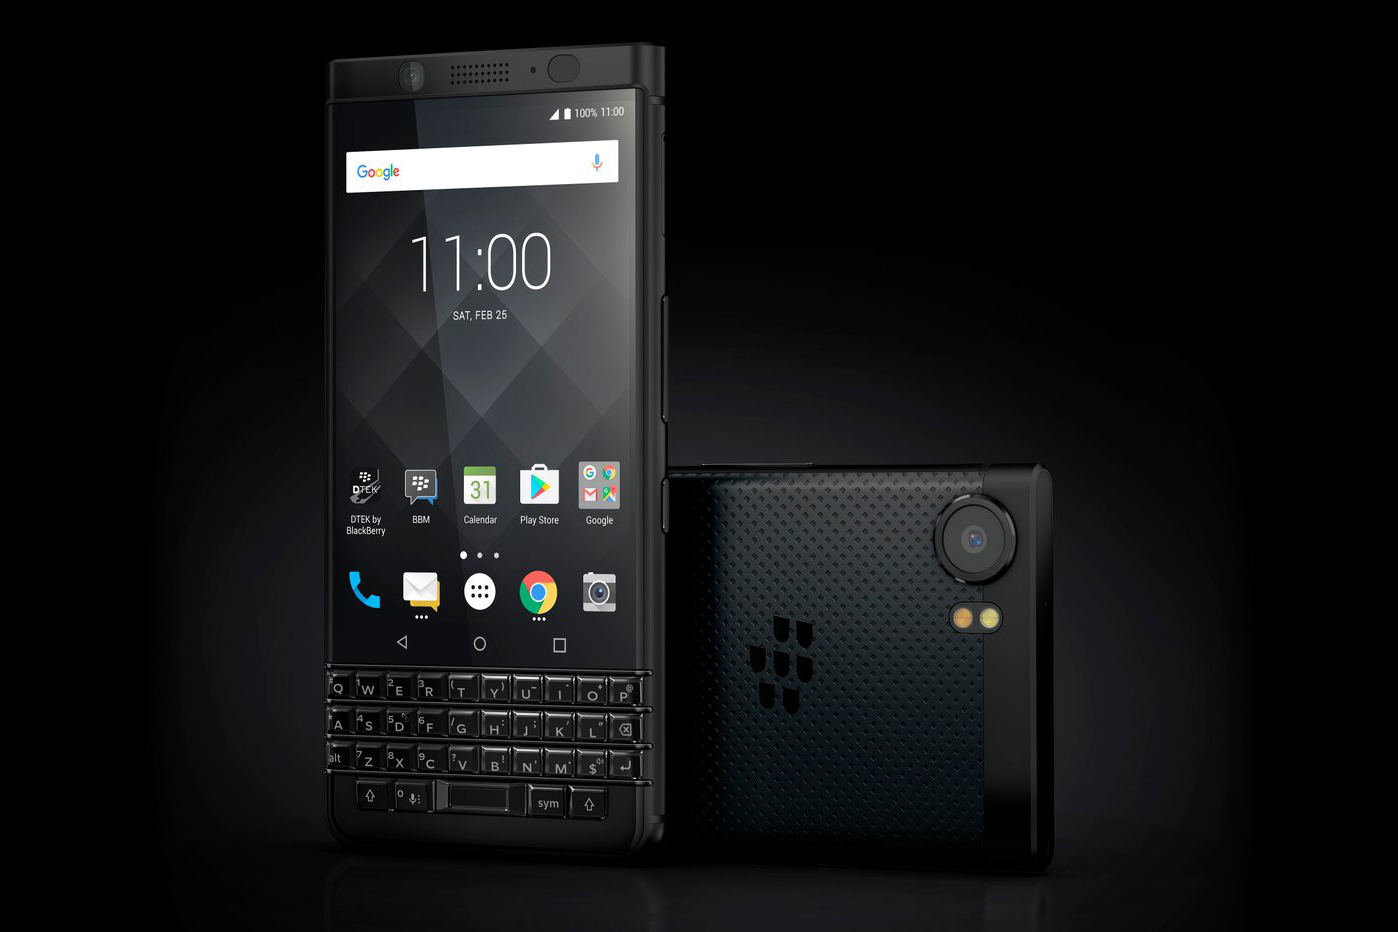 Limited Edition Black Improves On Blackberry S Keyone But